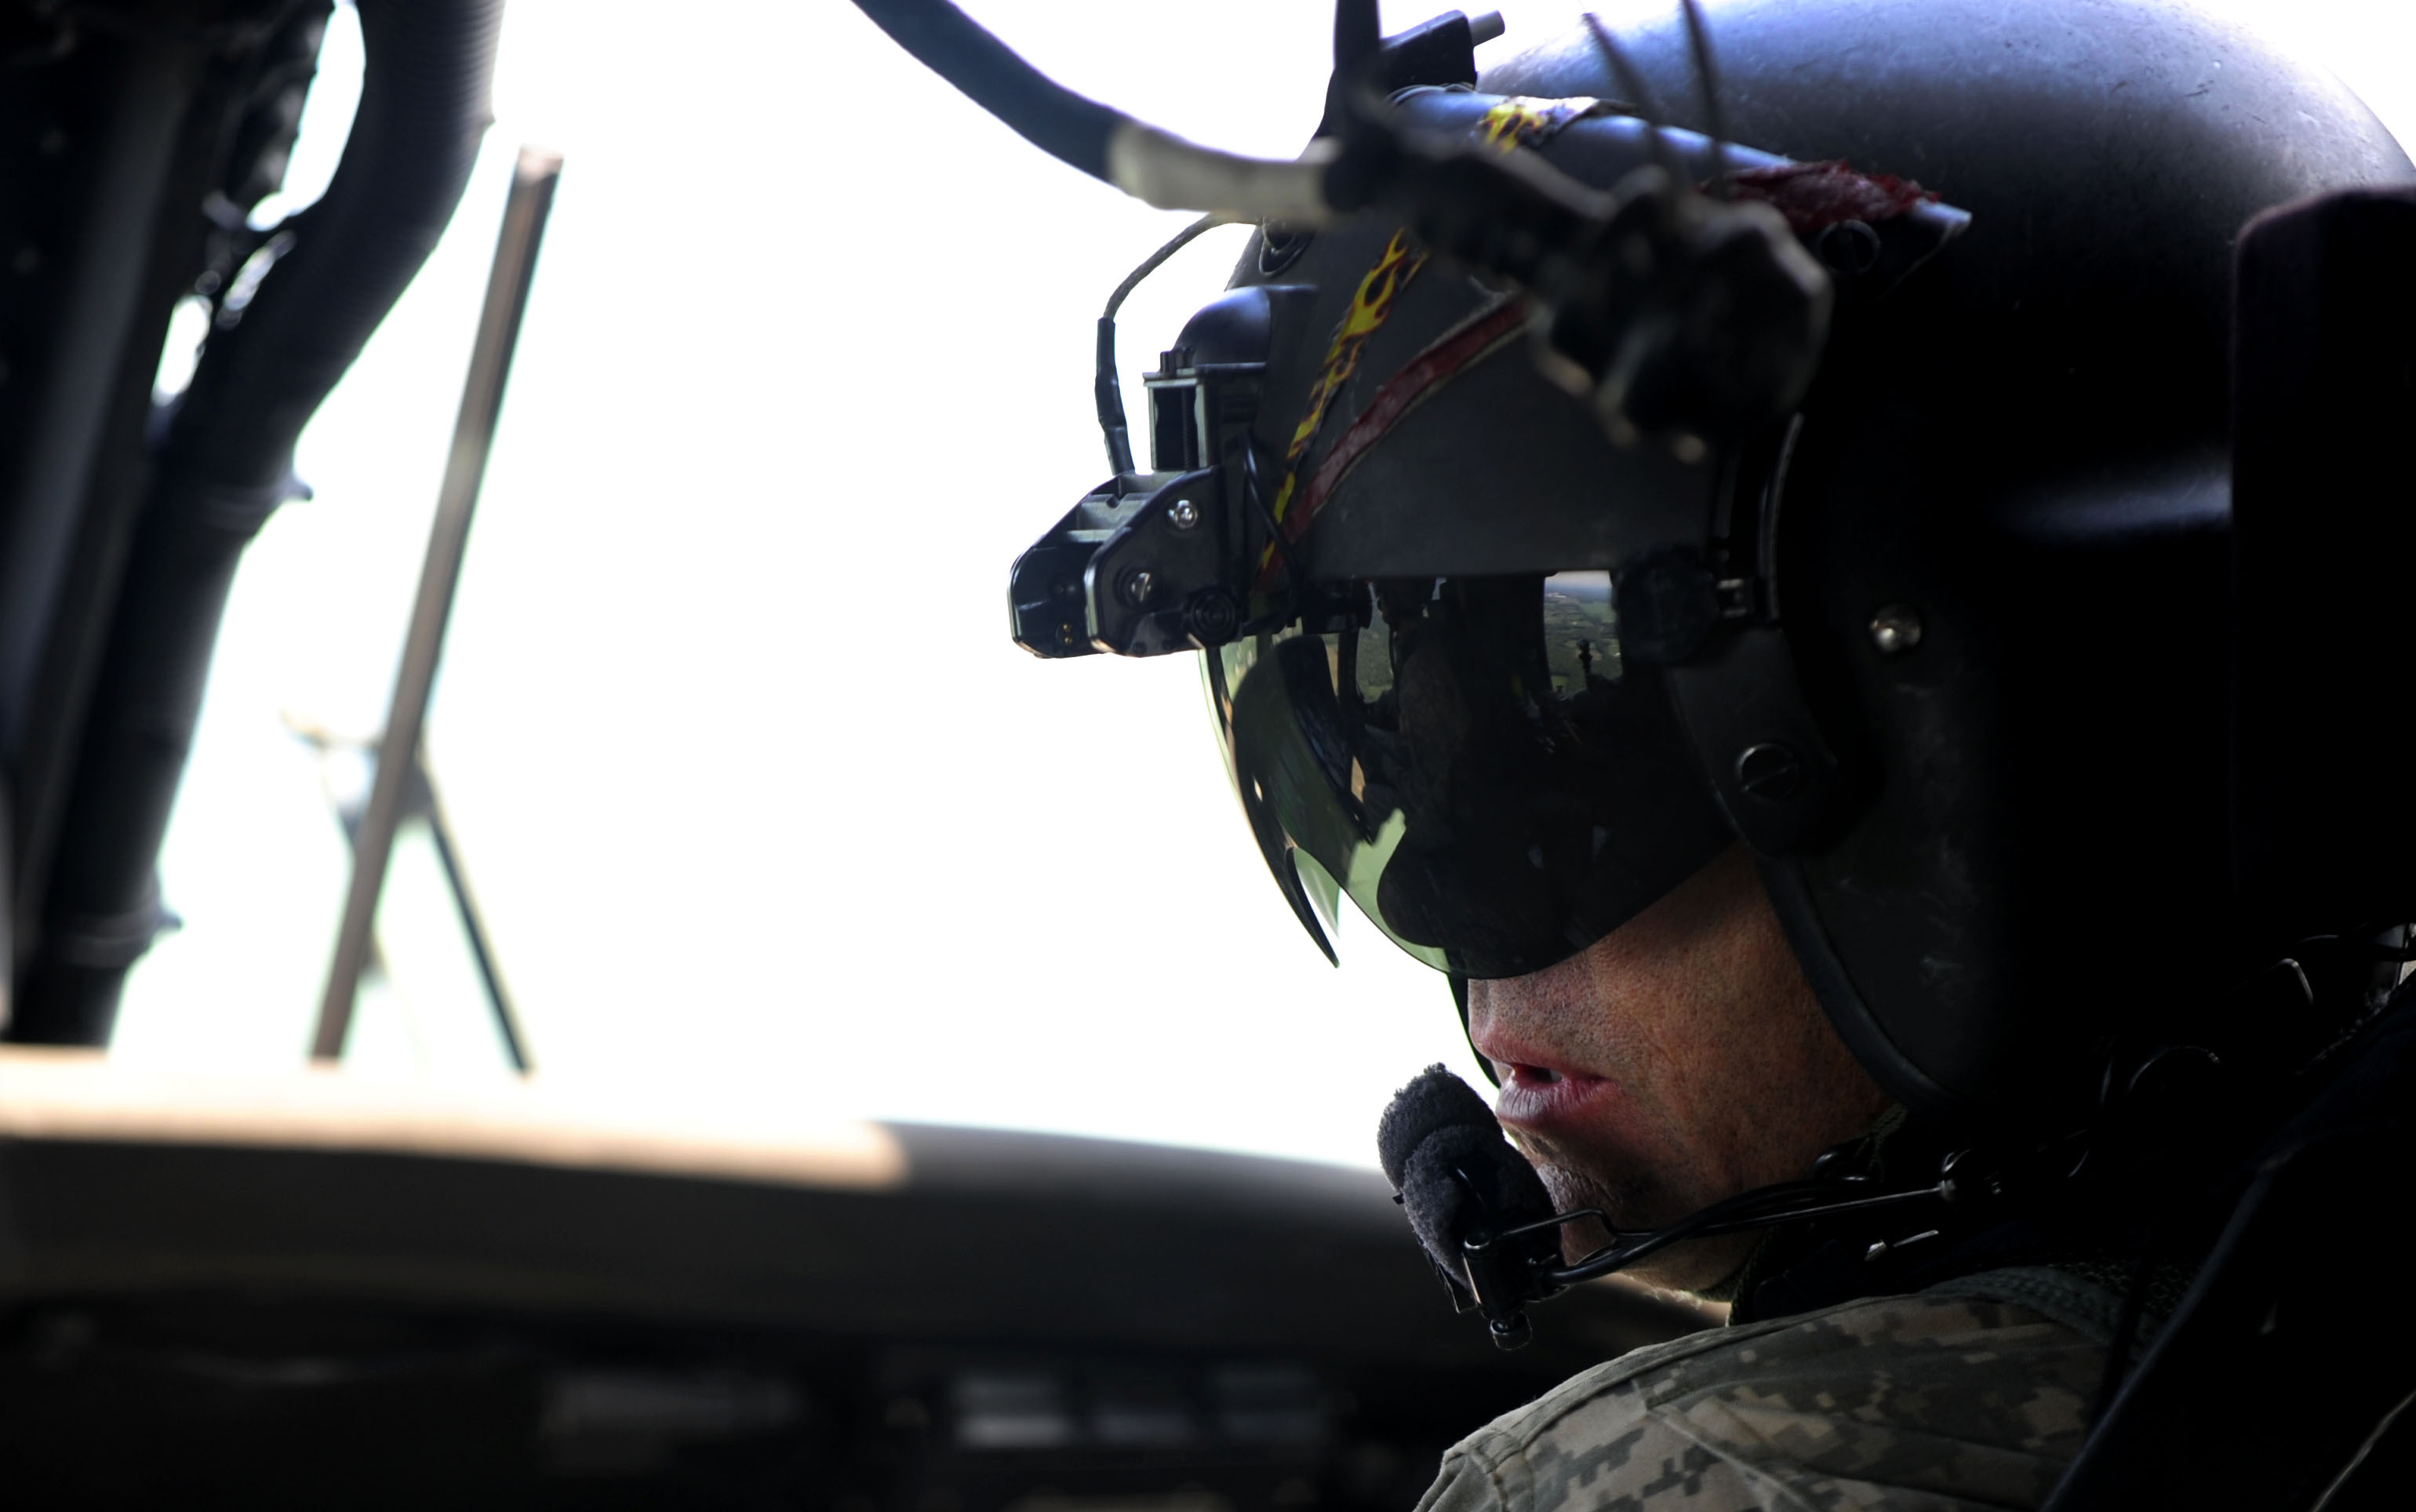 hind helicopter with File U S  Army Chief Warrant Officer 3 Kevin Palermino  A Uh 60 Black Hawk Helicopter Pilot With The 169th Aviation Battalion  Conducts An Aerial Survey Mission July 31  2012  During Exercise Vibrant Response 13 120731 F Ui476 175 on 66 24 Mi 24v Bell P 39 Airahind Fantasy besides Watch as well File U S  Army Chief Warrant Officer 3 Kevin Palermino  a UH 60 Black Hawk helicopter pilot with the 169th Aviation Battalion  conducts an aerial survey mission July 31  2012  during exercise Vibrant Response 13 120731 F UI476 175 as well 48 furthermore 3361 Czech Air Force Mil Mi 35.